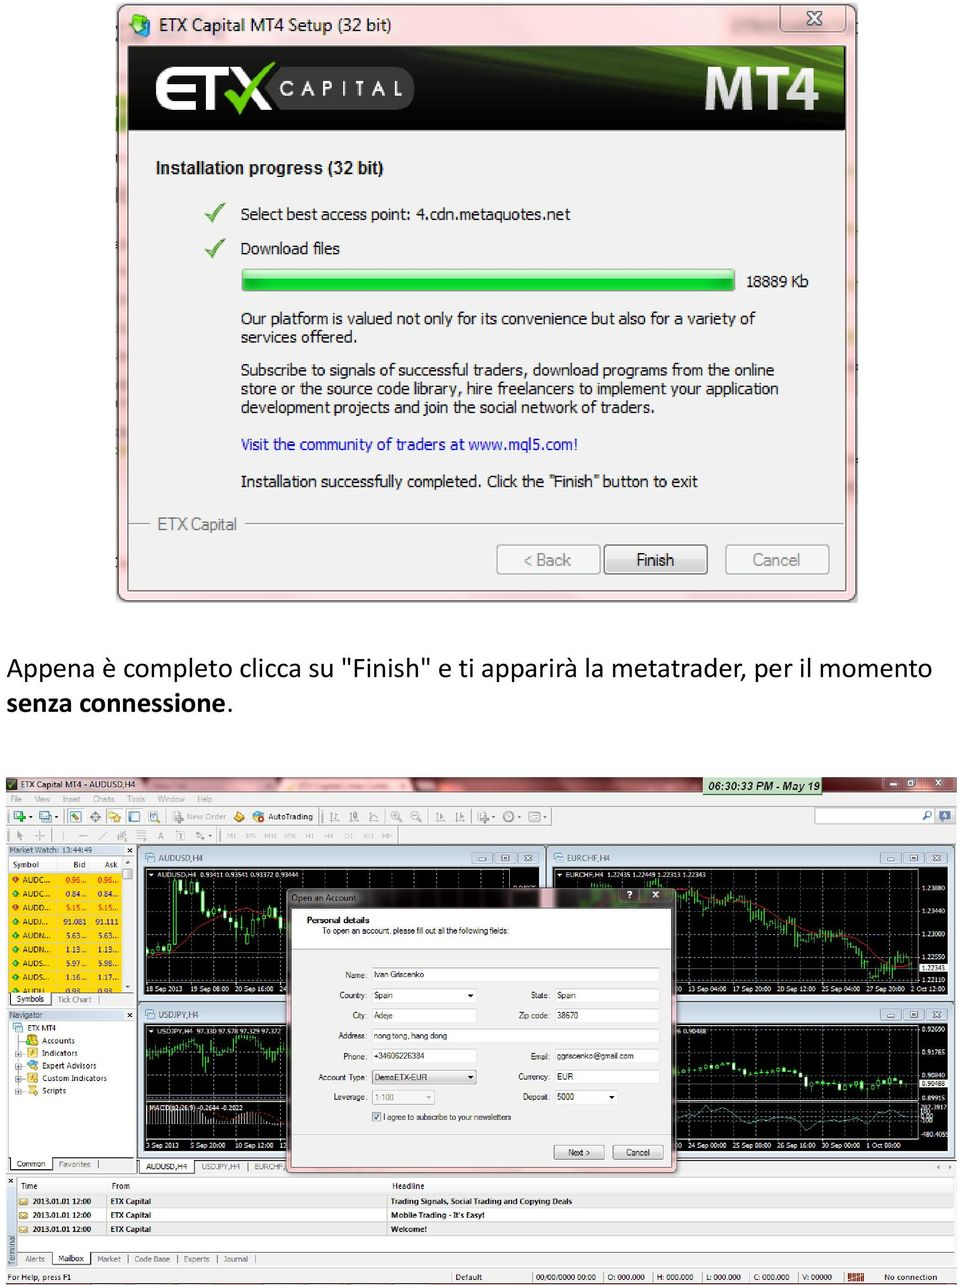 apparirà la metatrader,